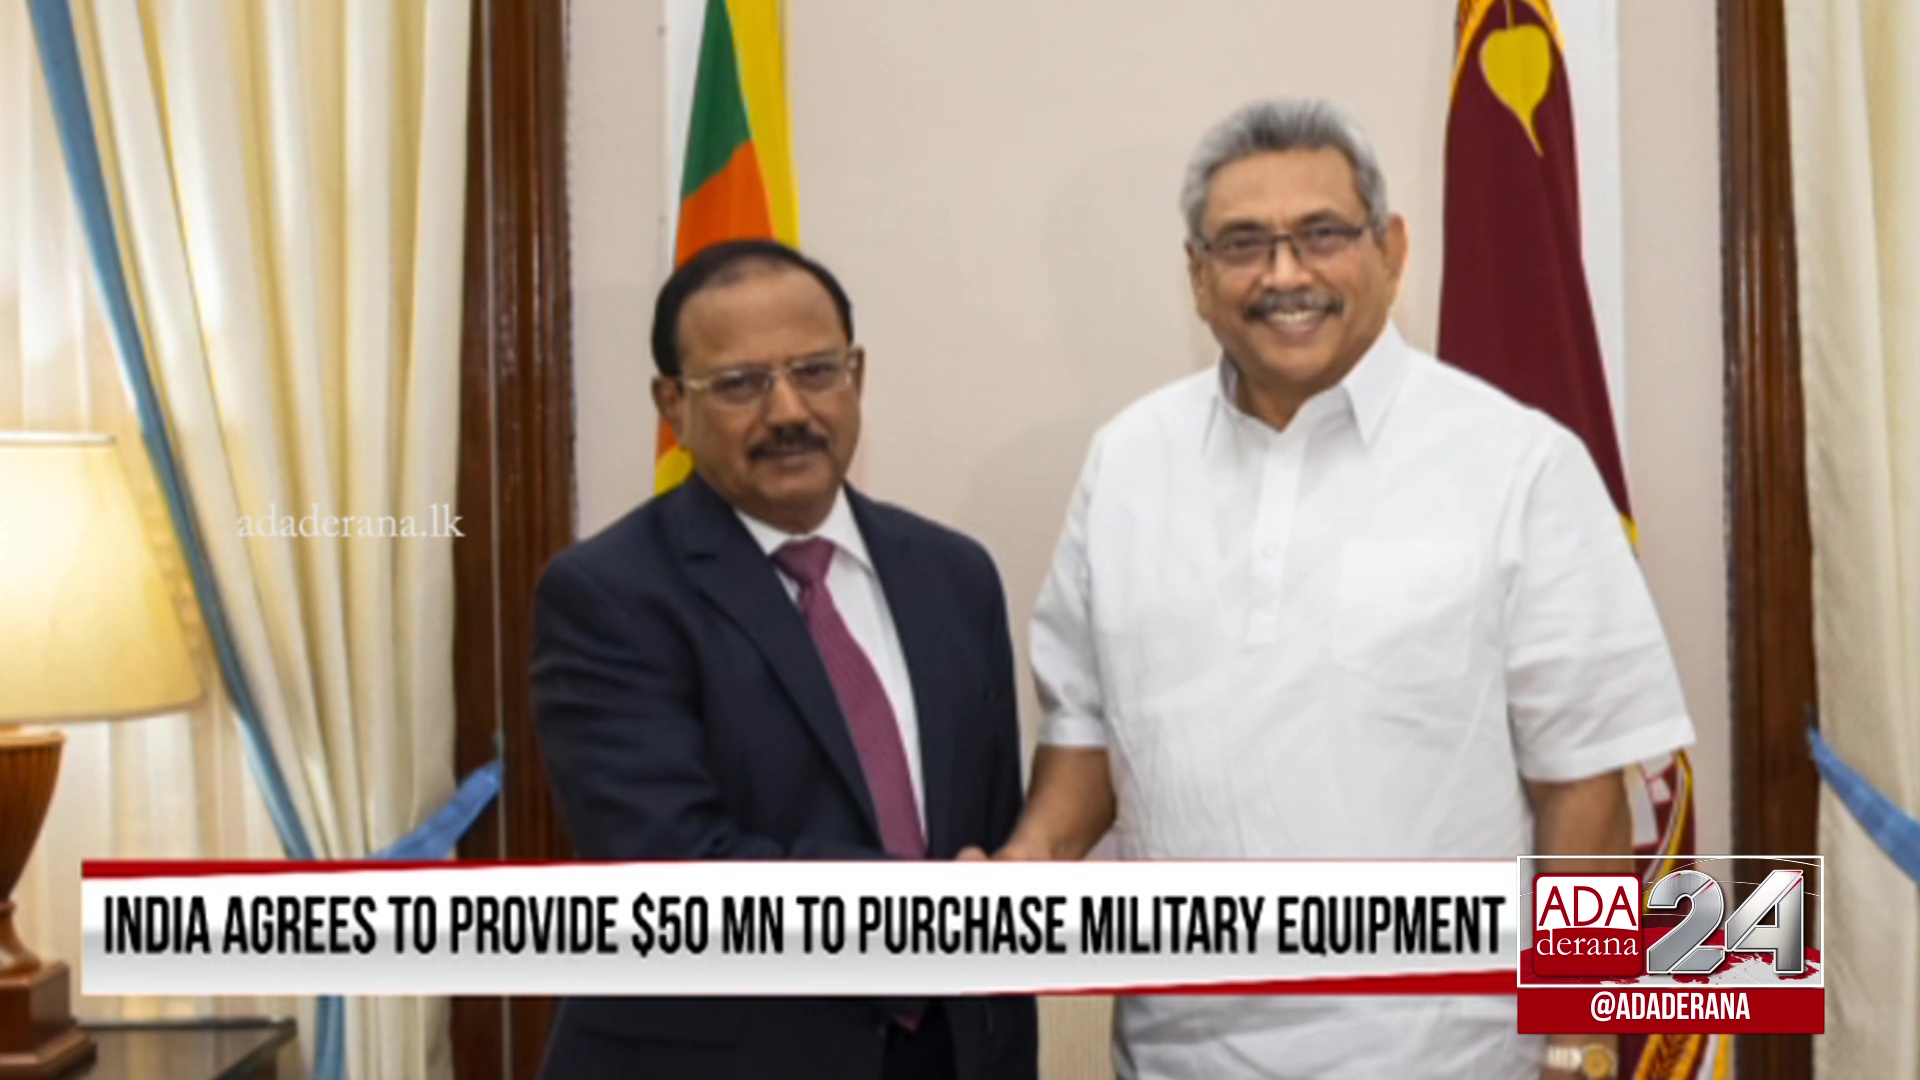 India assures USD 50 Mn for Sri Lanka's defence equipment purchases (English)